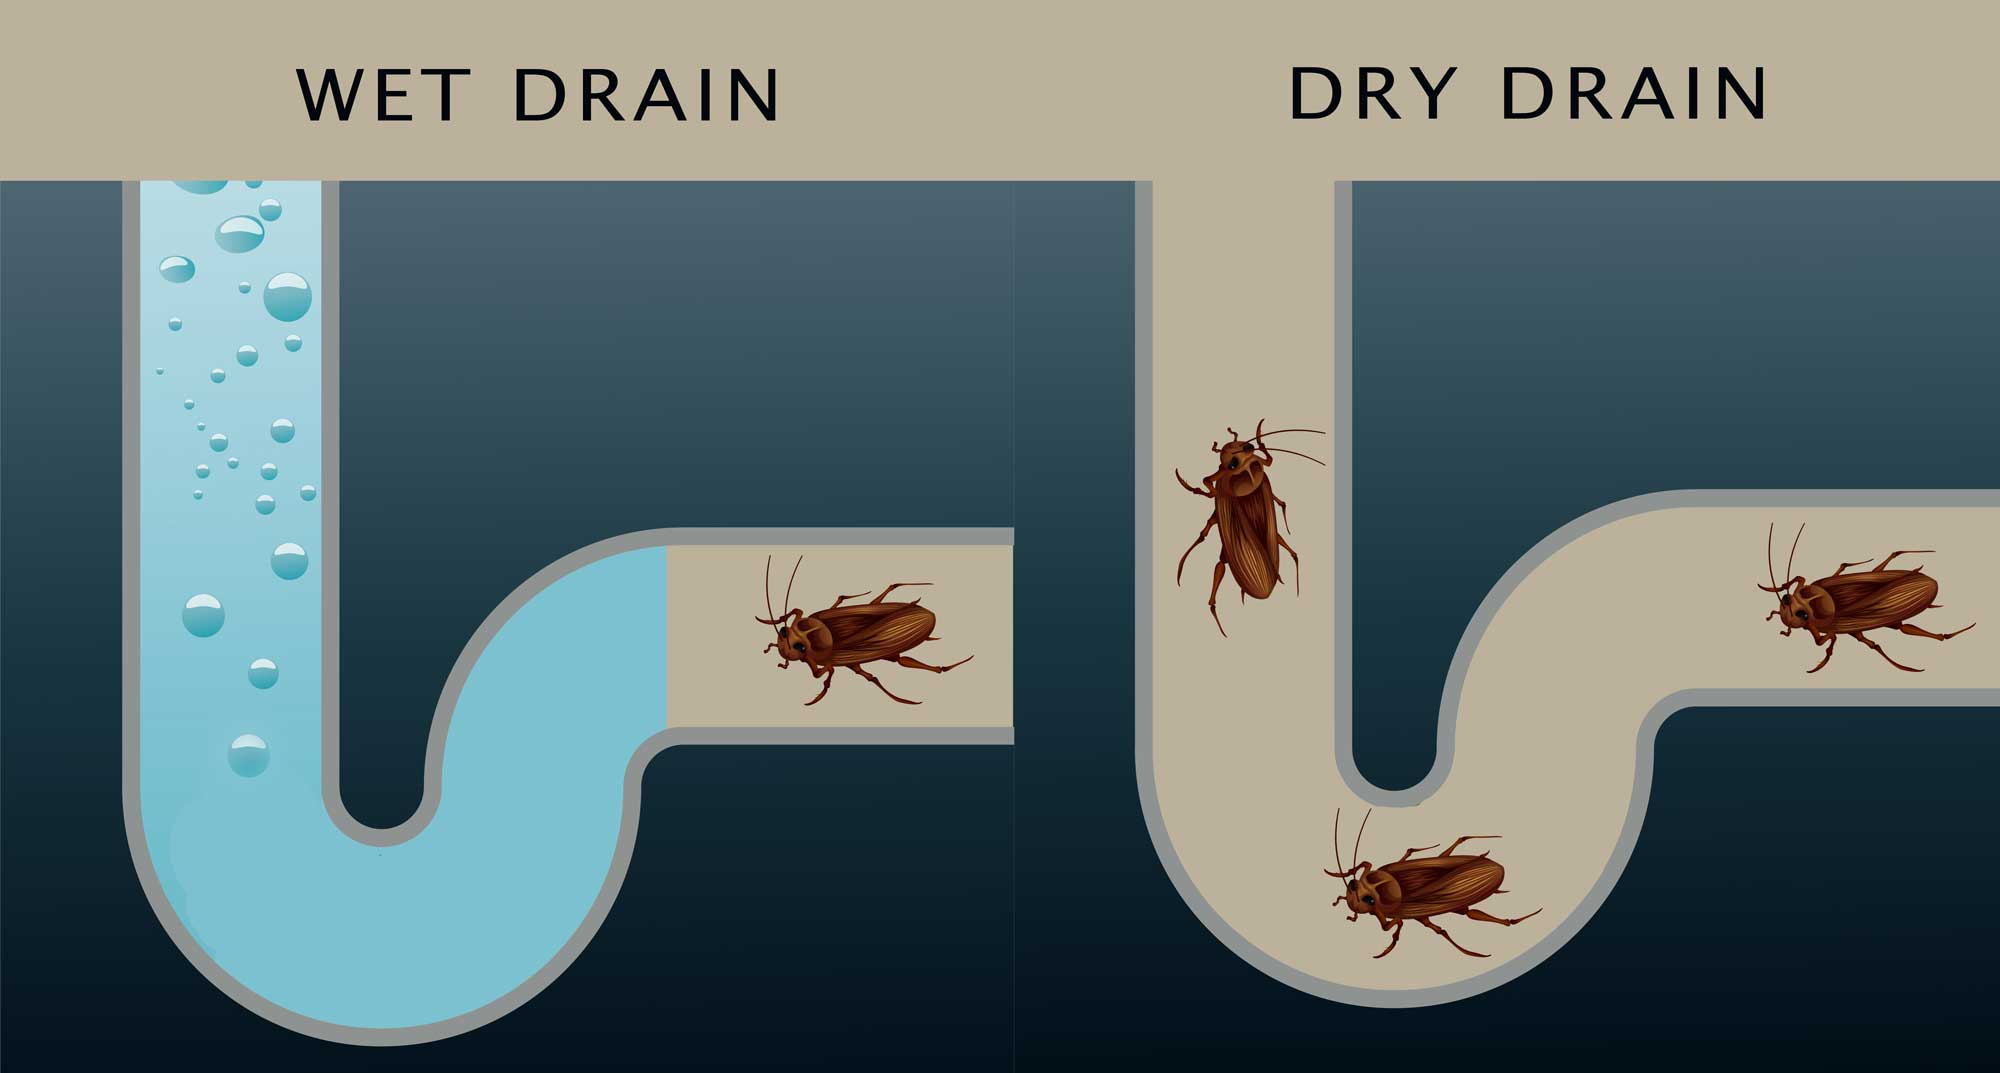 roaches stopped by a wet p-trap in a drain pipe verses roaches that can get into a house through a dry p-trap drain